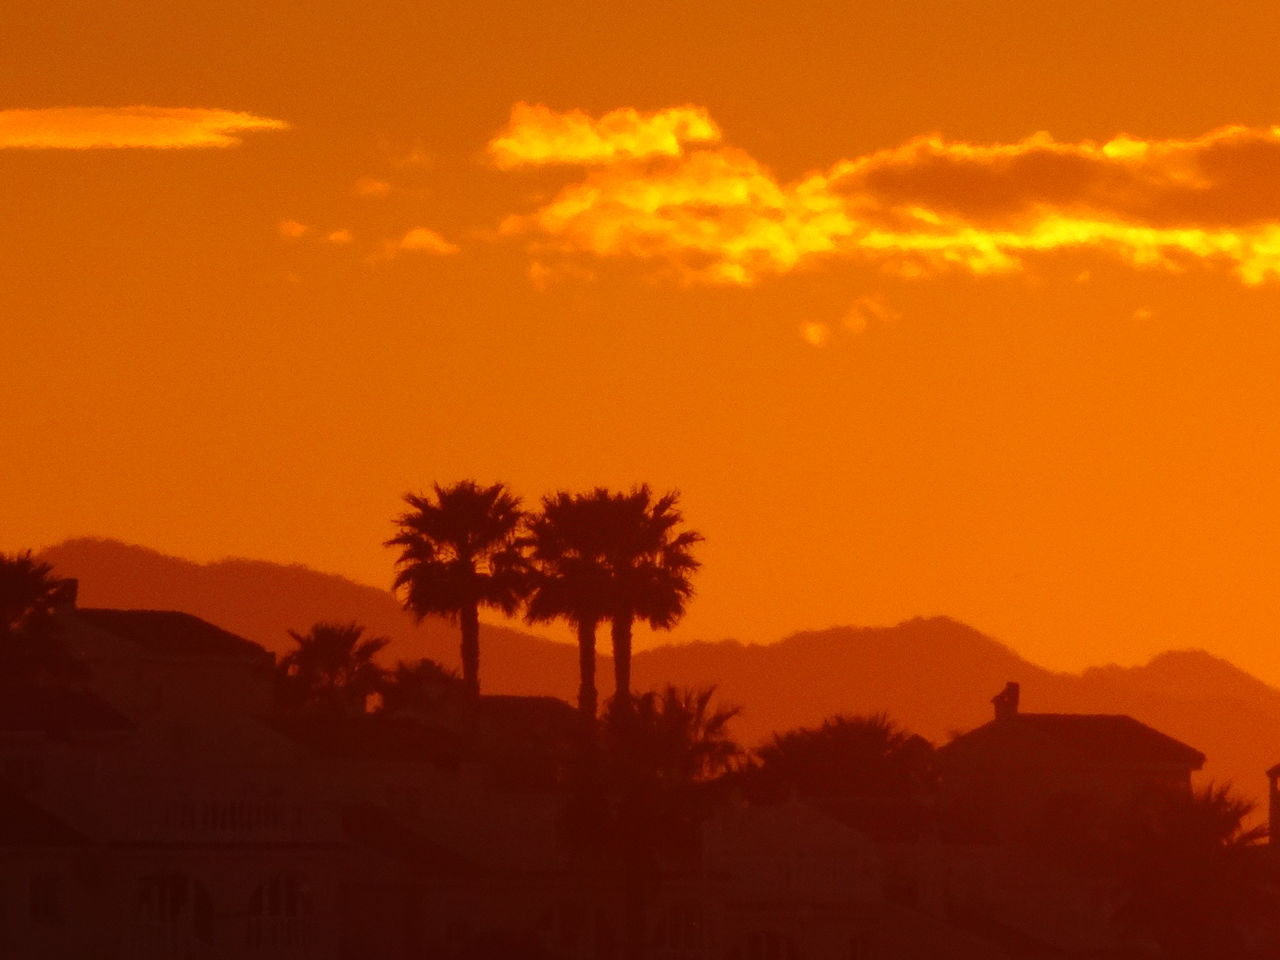 sunset, silhouette, orange color, tree, nature, tranquility, beauty in nature, tranquil scene, sky, scenics, no people, landscape, outdoors, palm tree, mountain, day